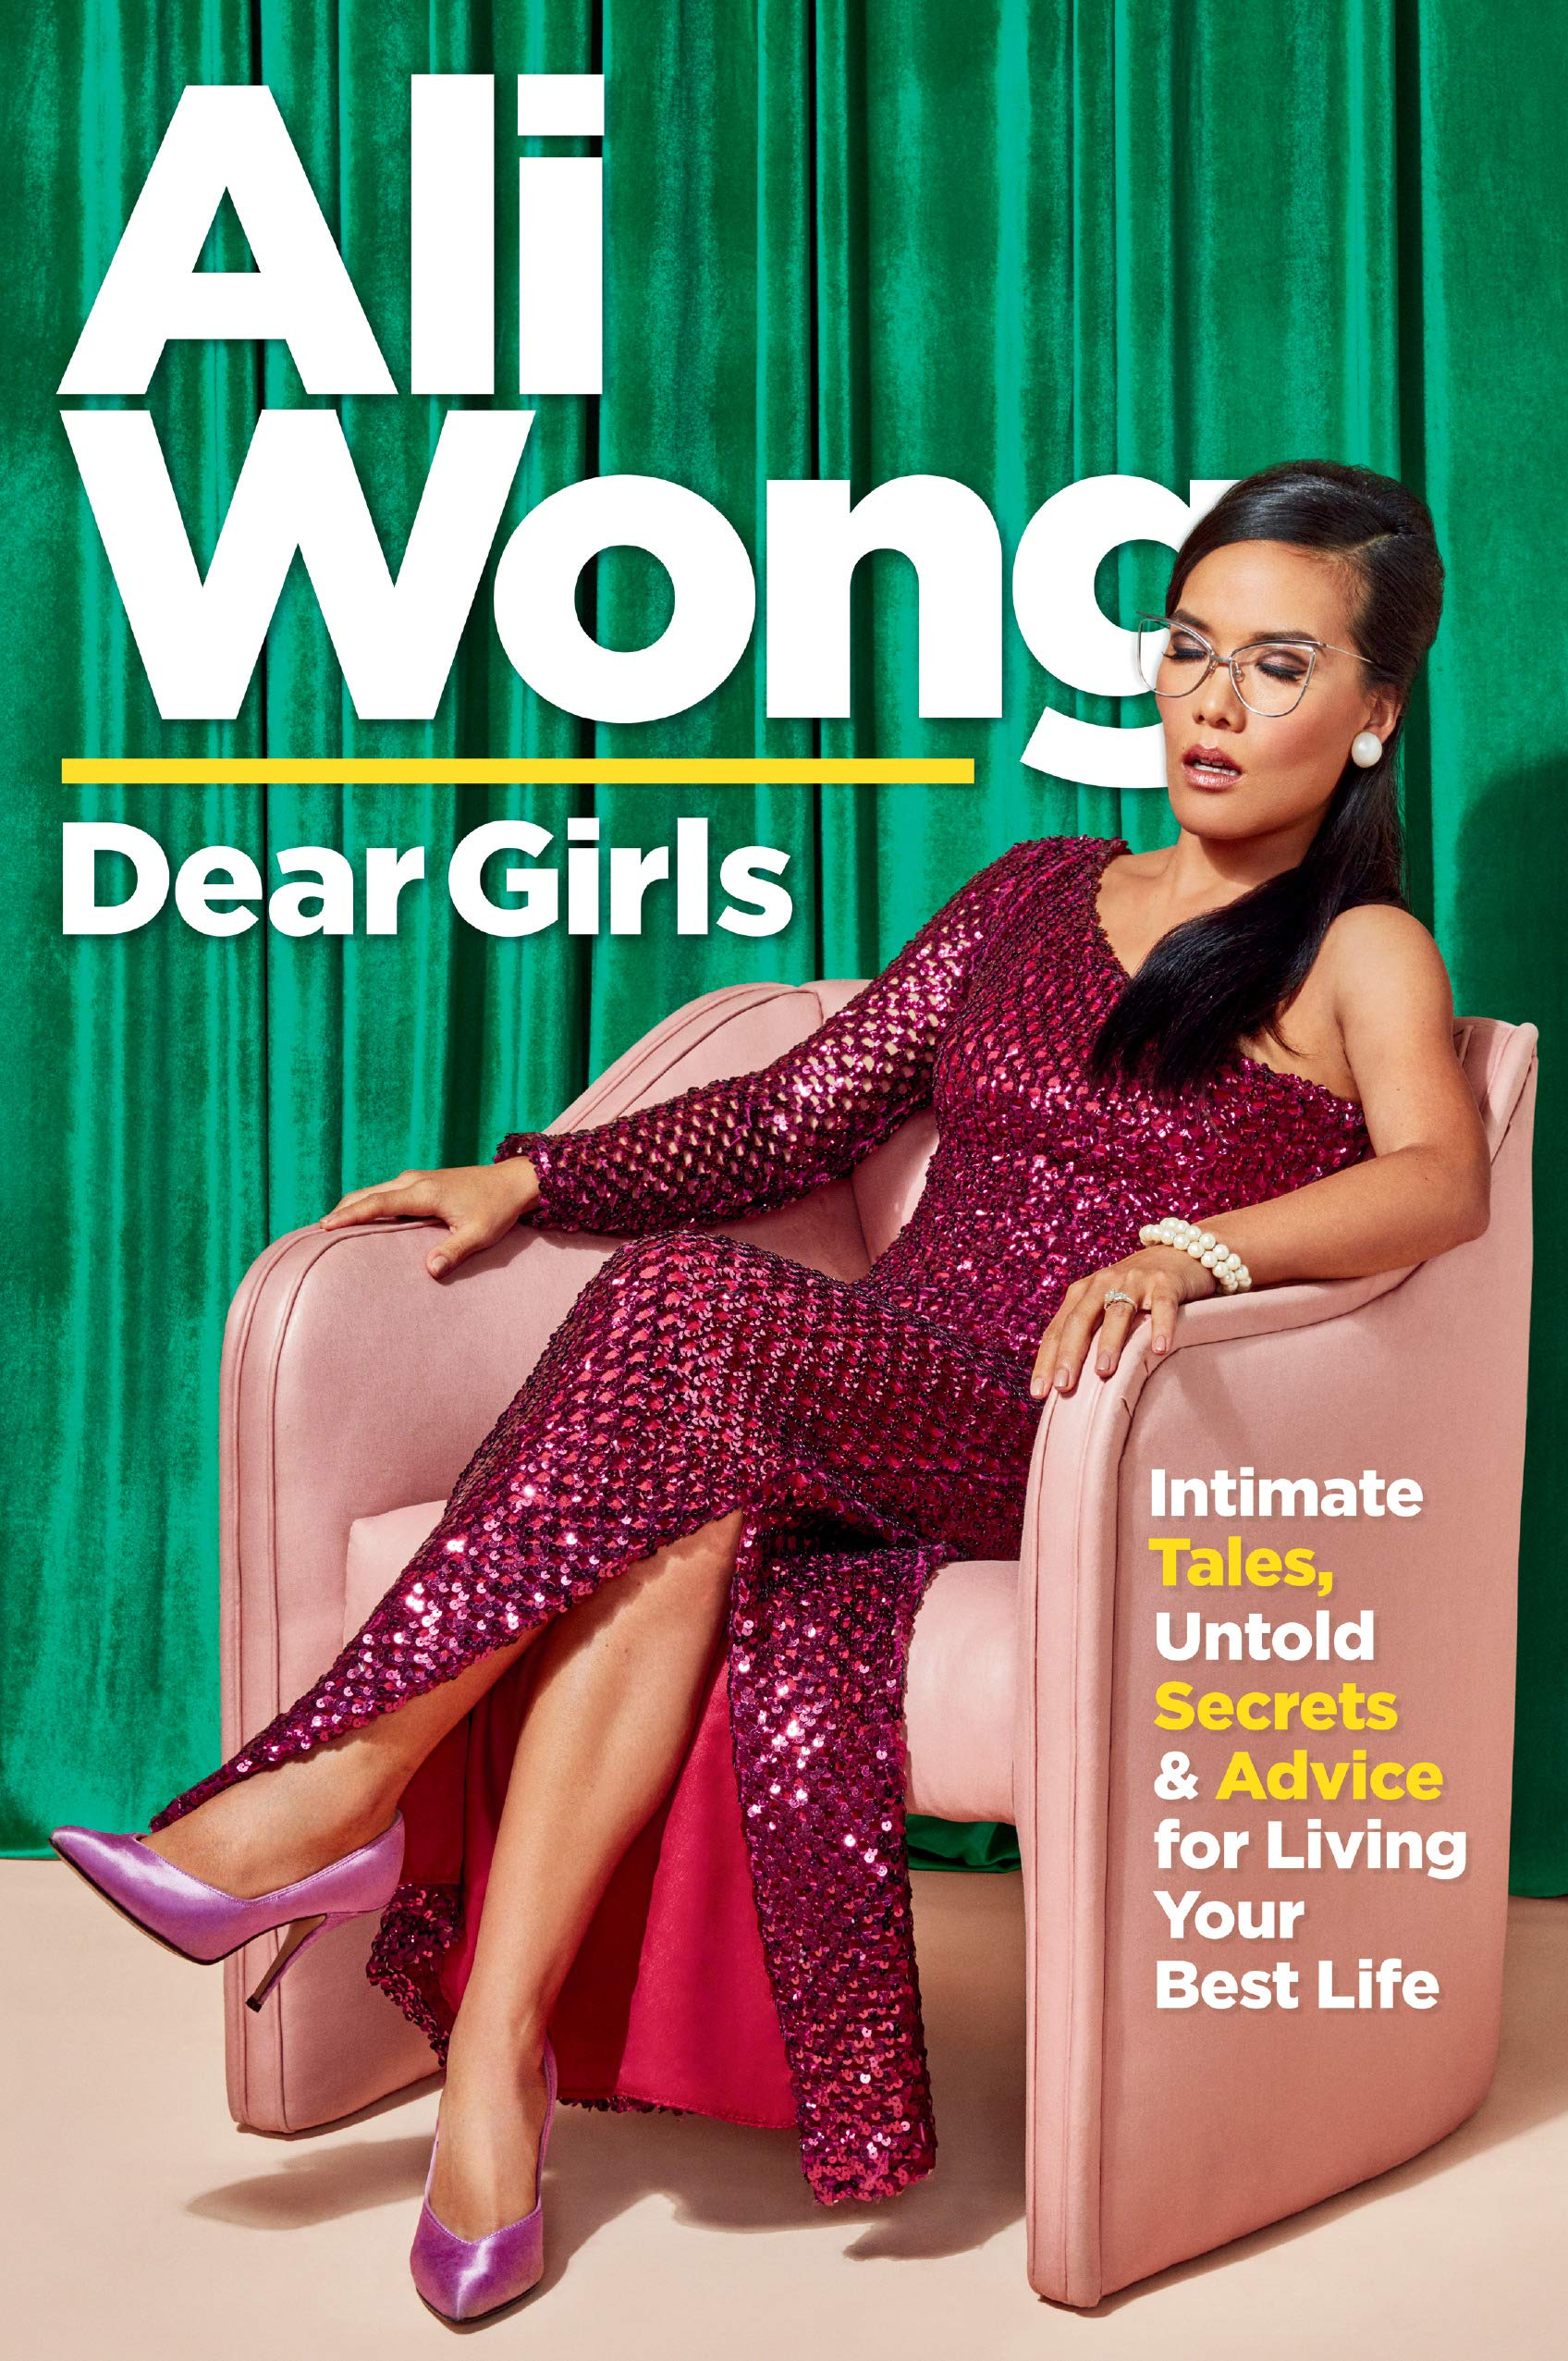 Dear Girls: Intimate Tales, Untold Secrets & Advice for Living Your Best Life by Ali Wong - Best Christmas Gifts of 2019